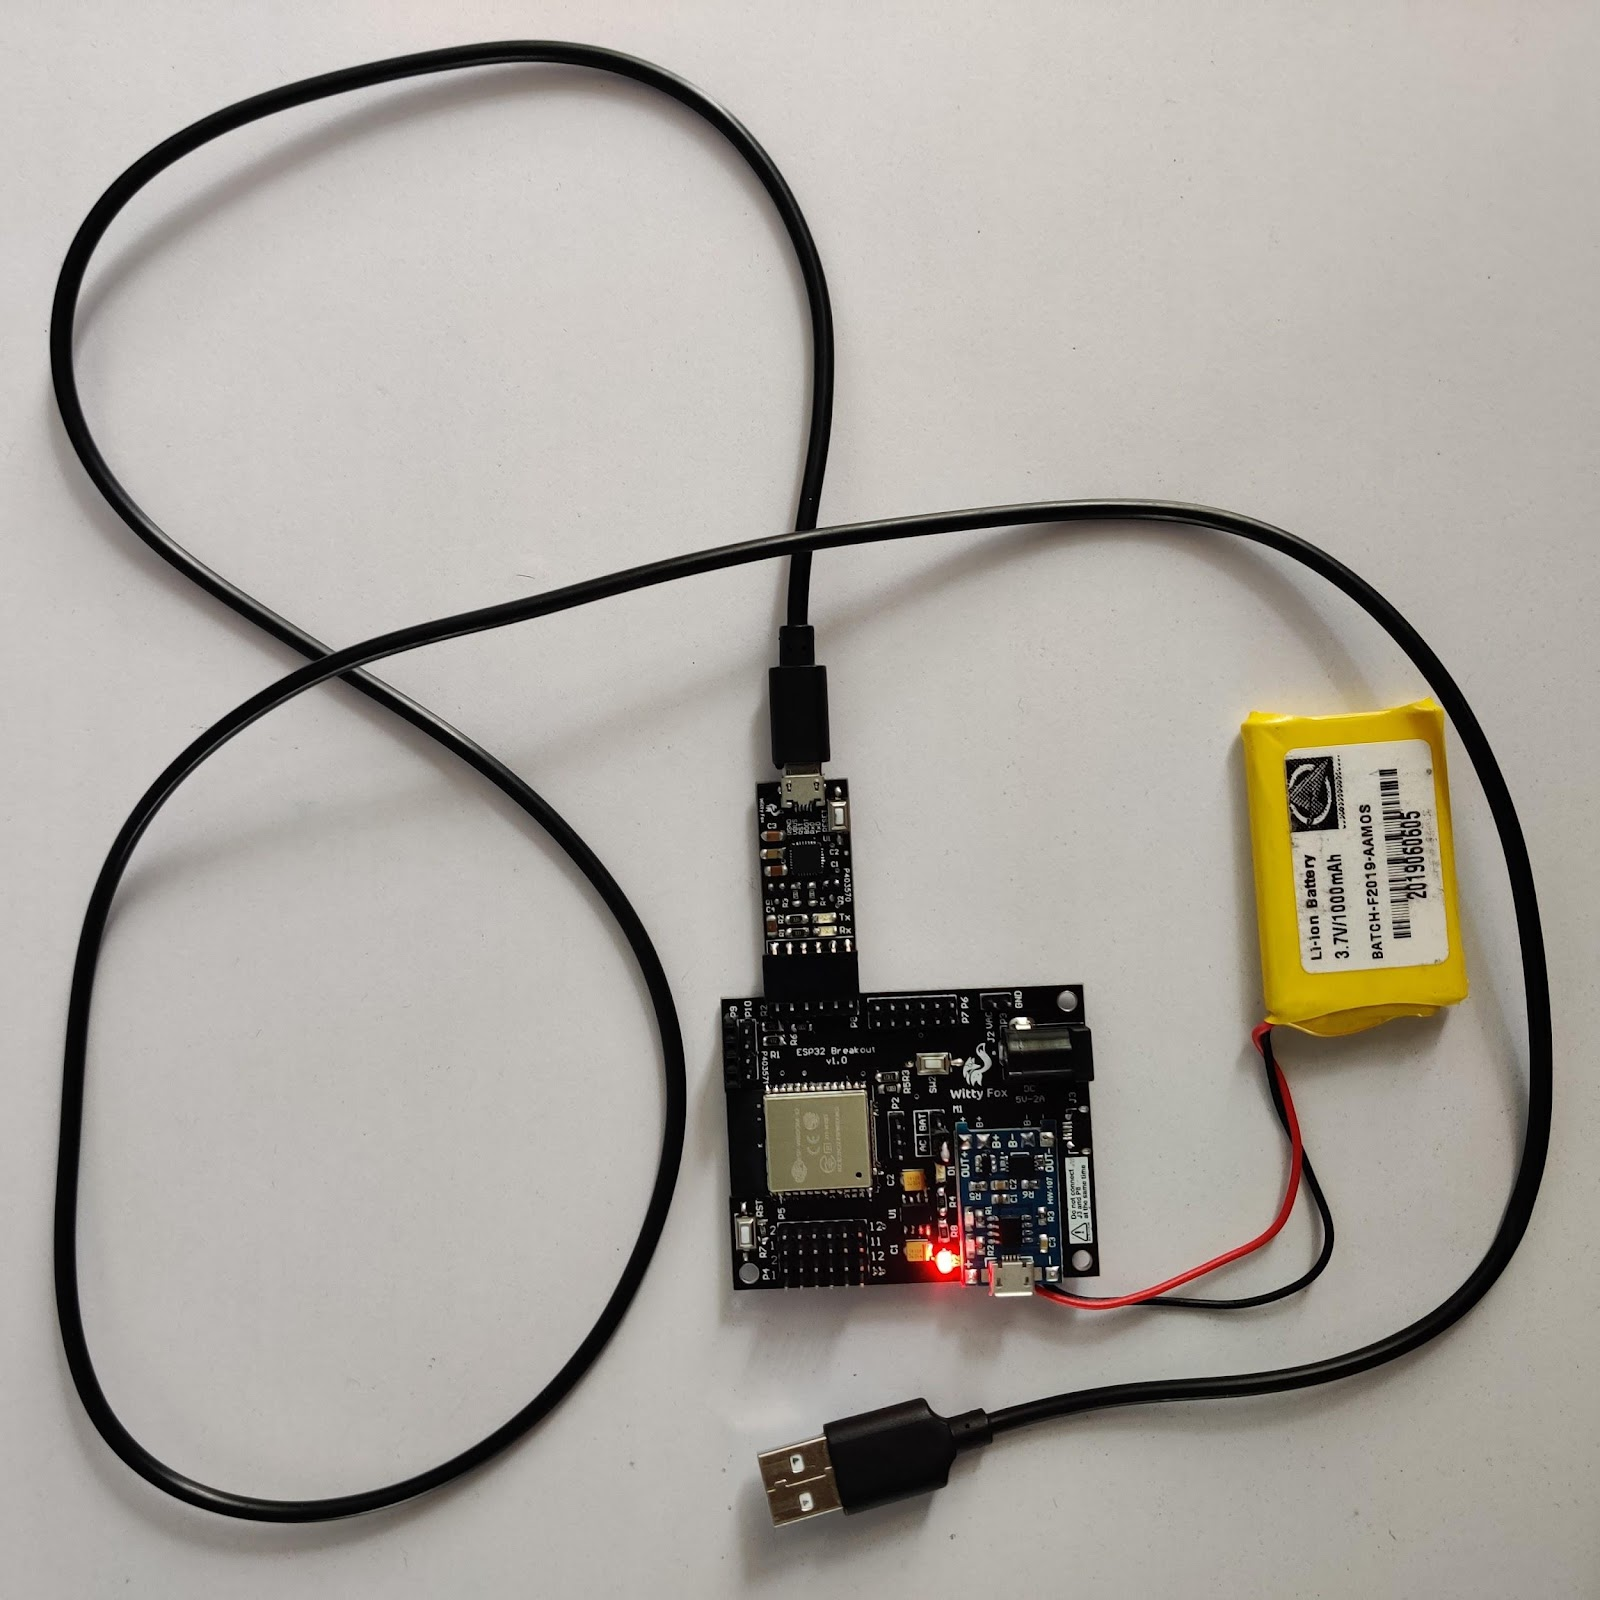 Programmer+board connections